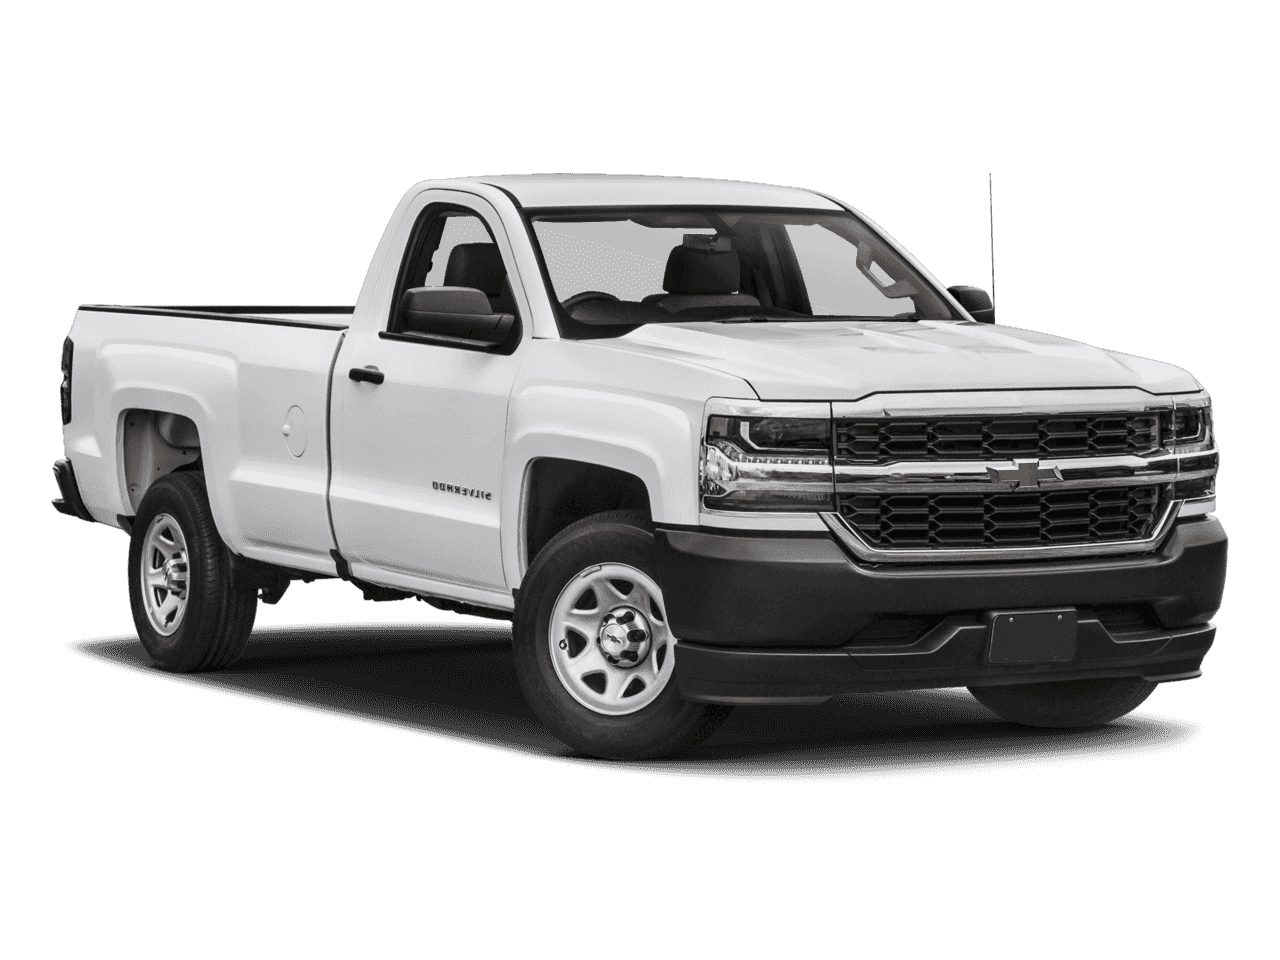 new chevrolet silverado 1500 in san jose capitol chevrolet. Black Bedroom Furniture Sets. Home Design Ideas